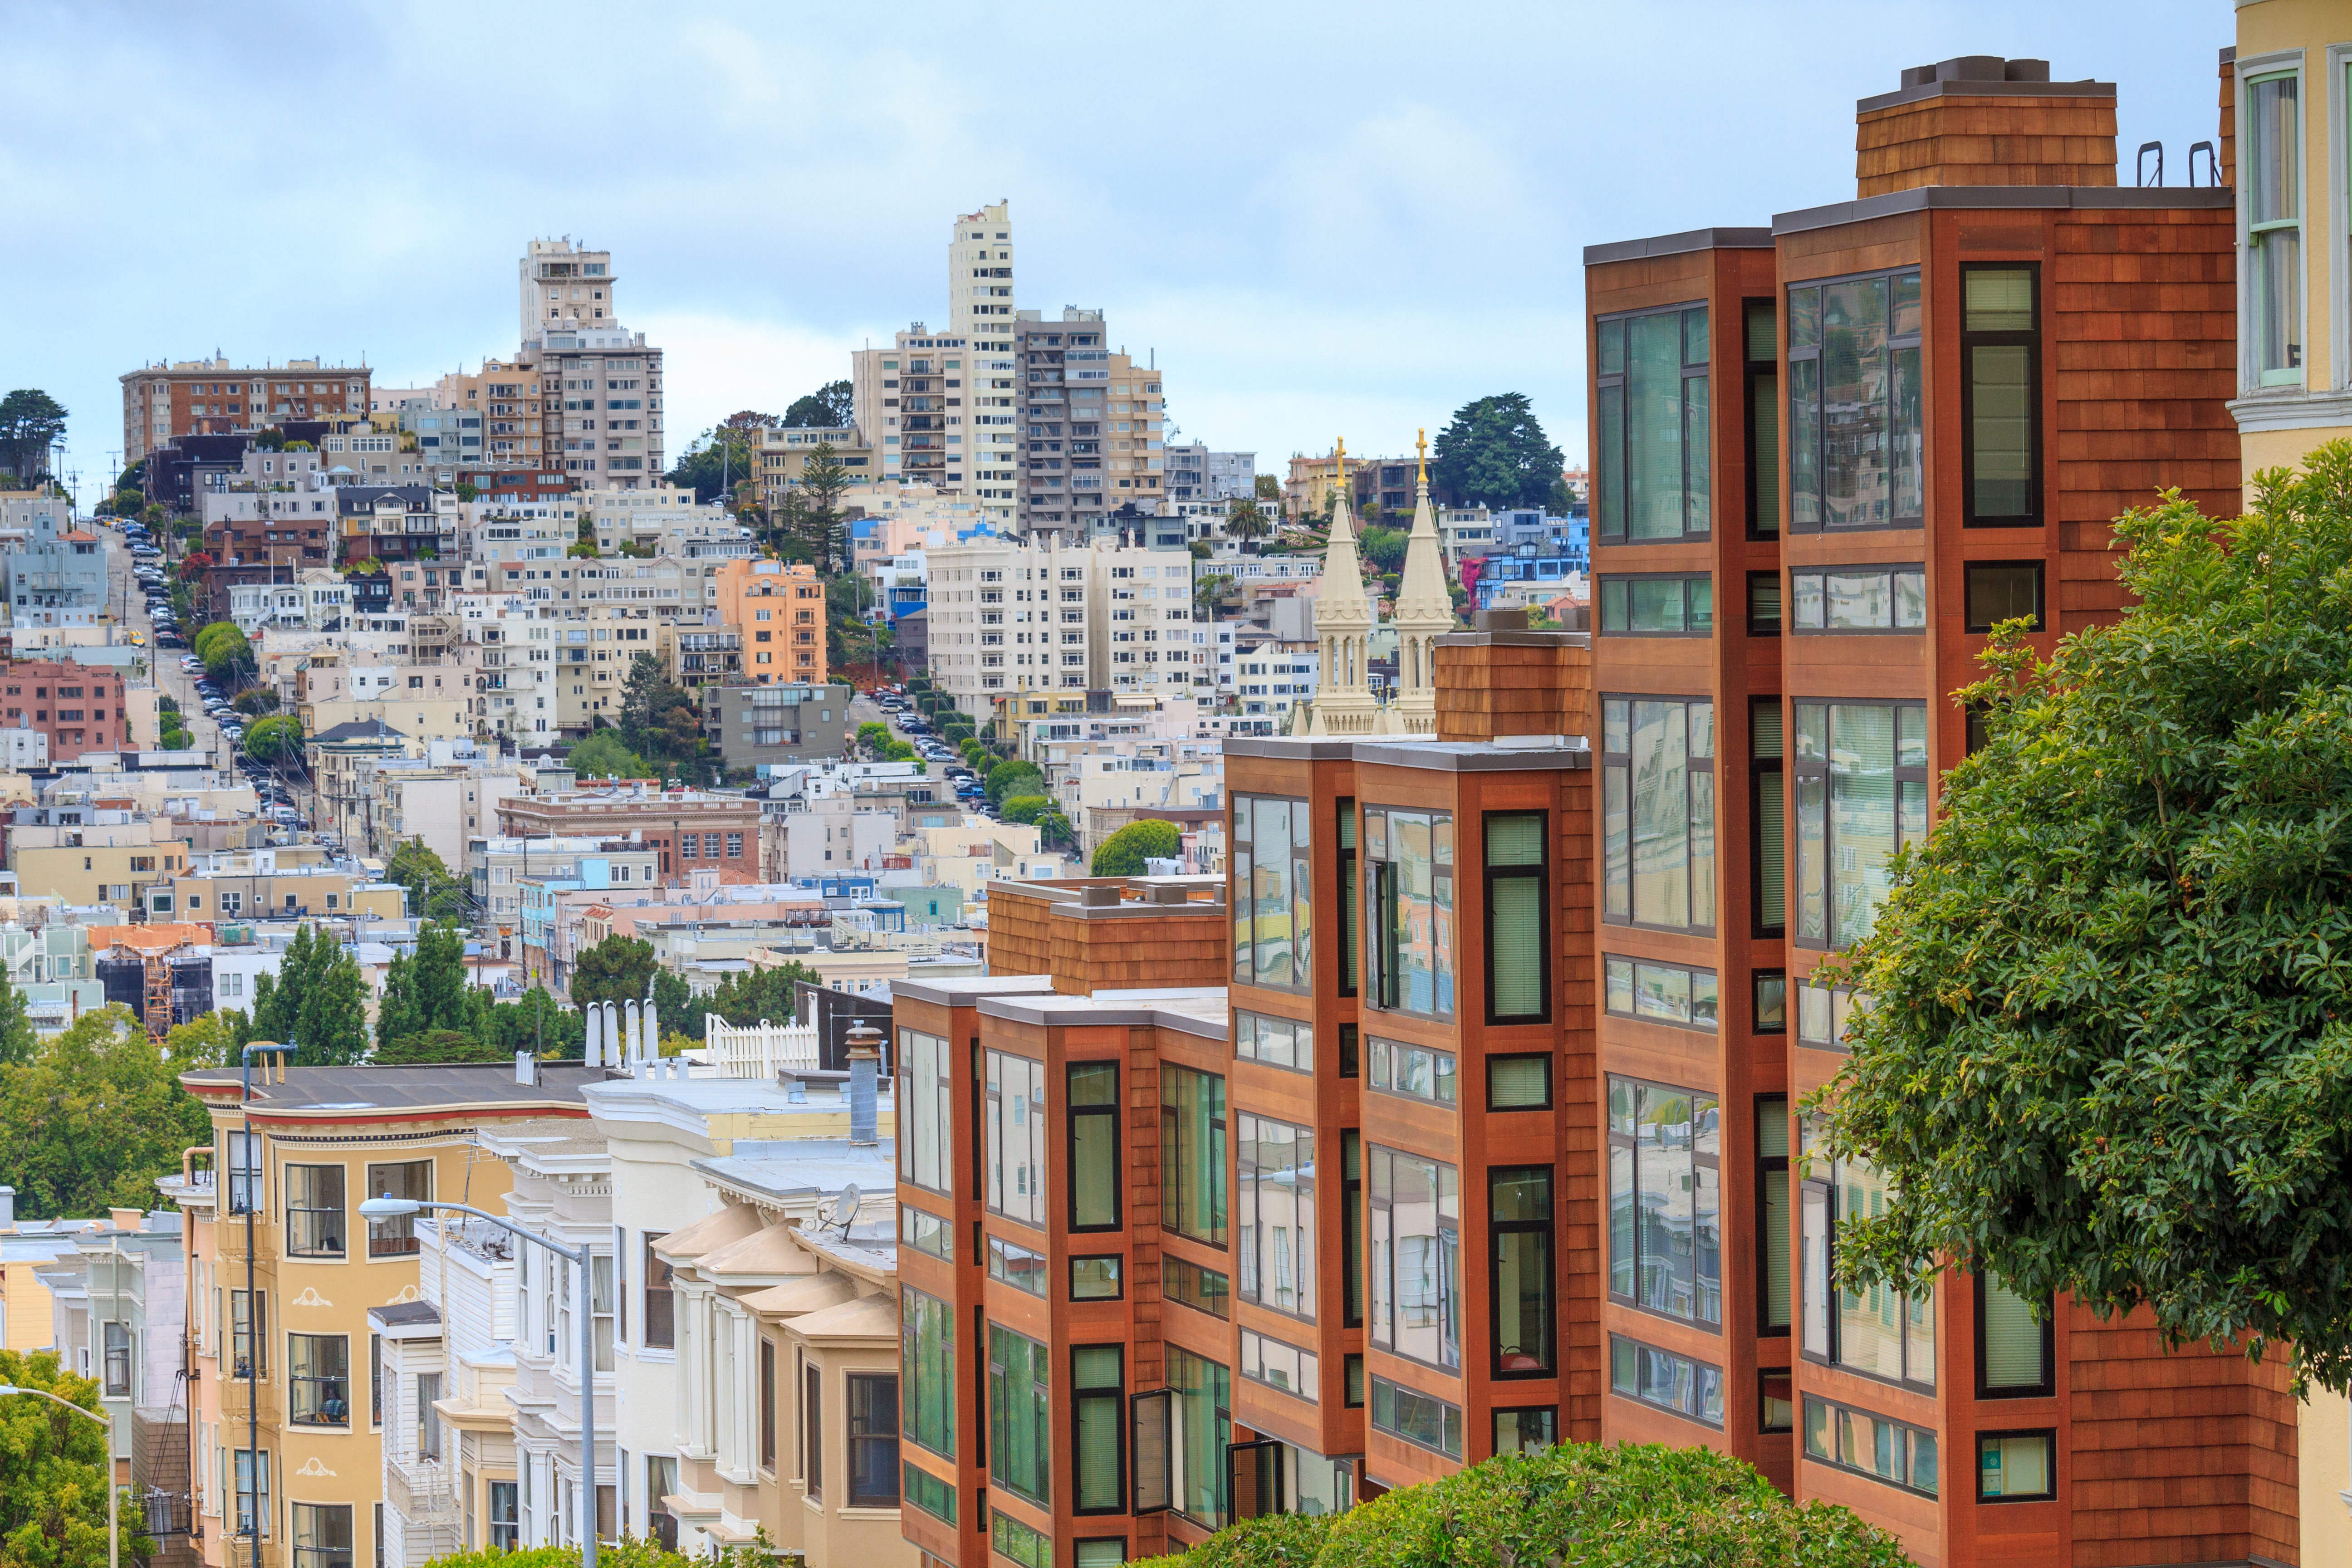 A dearth of new development in San Francisco compounds the Bay Area's housing problems.